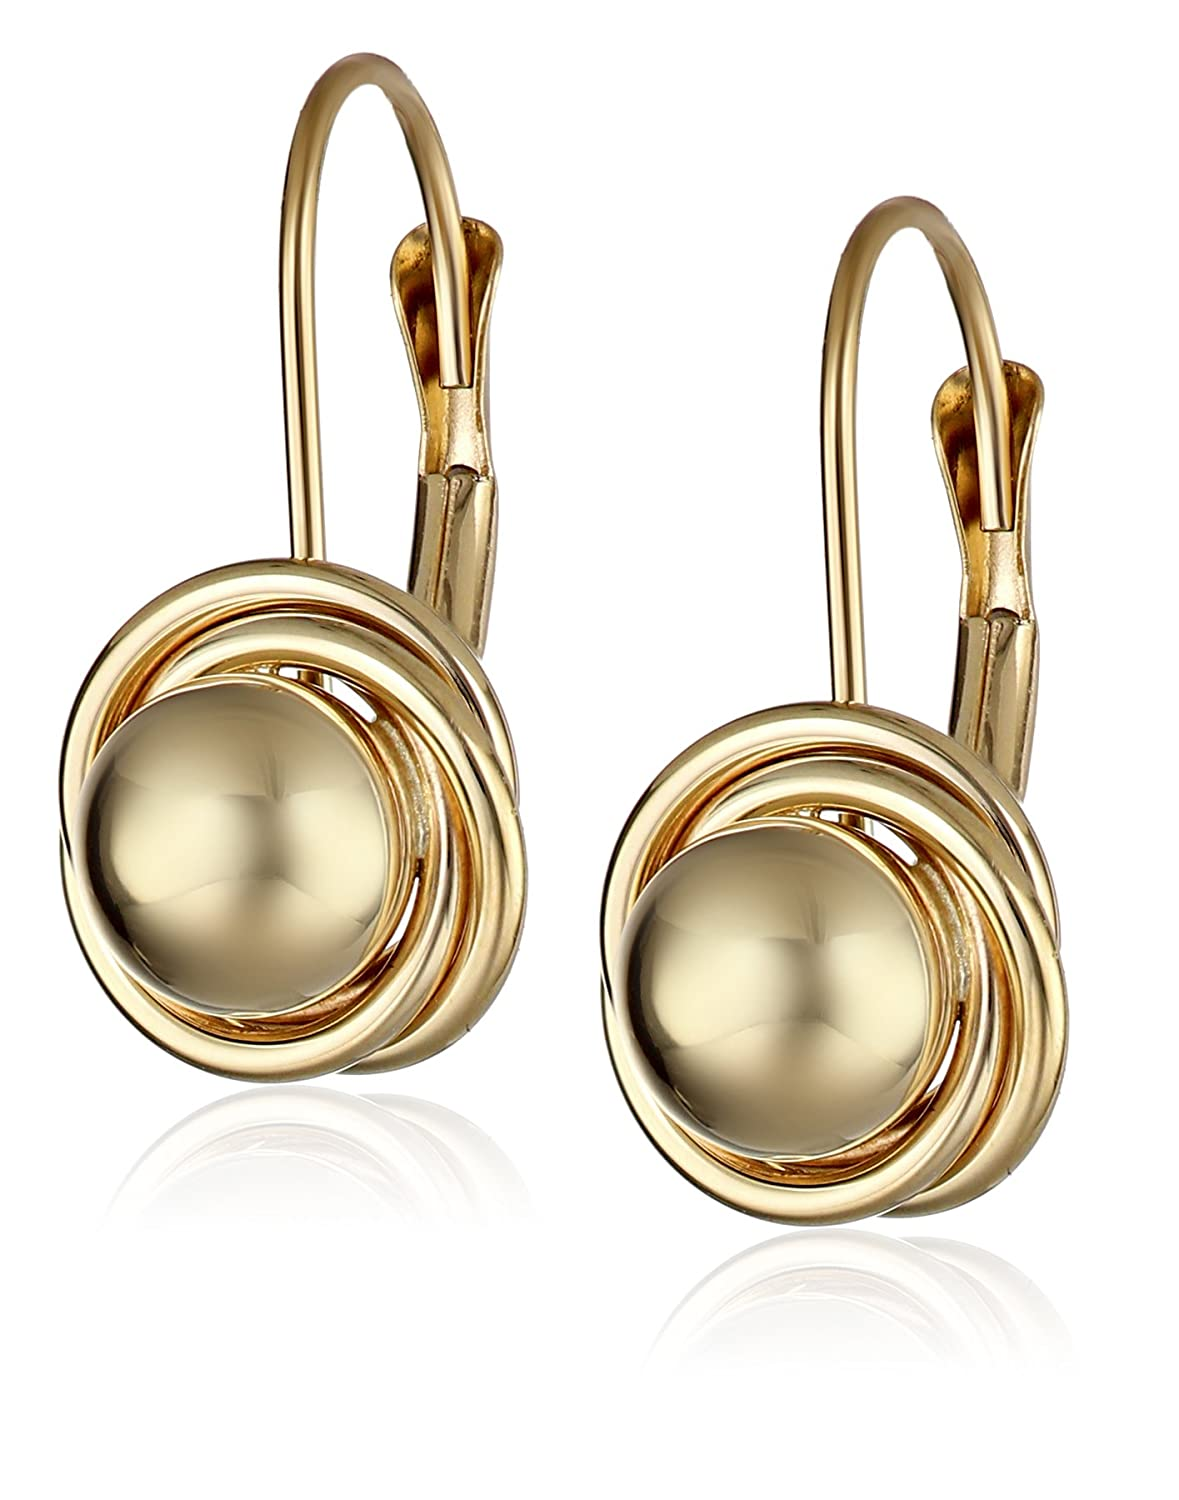 14k Yellow Gold Ball with Three Ring Earrings (6mm ) Amazon Collection 43/247-6